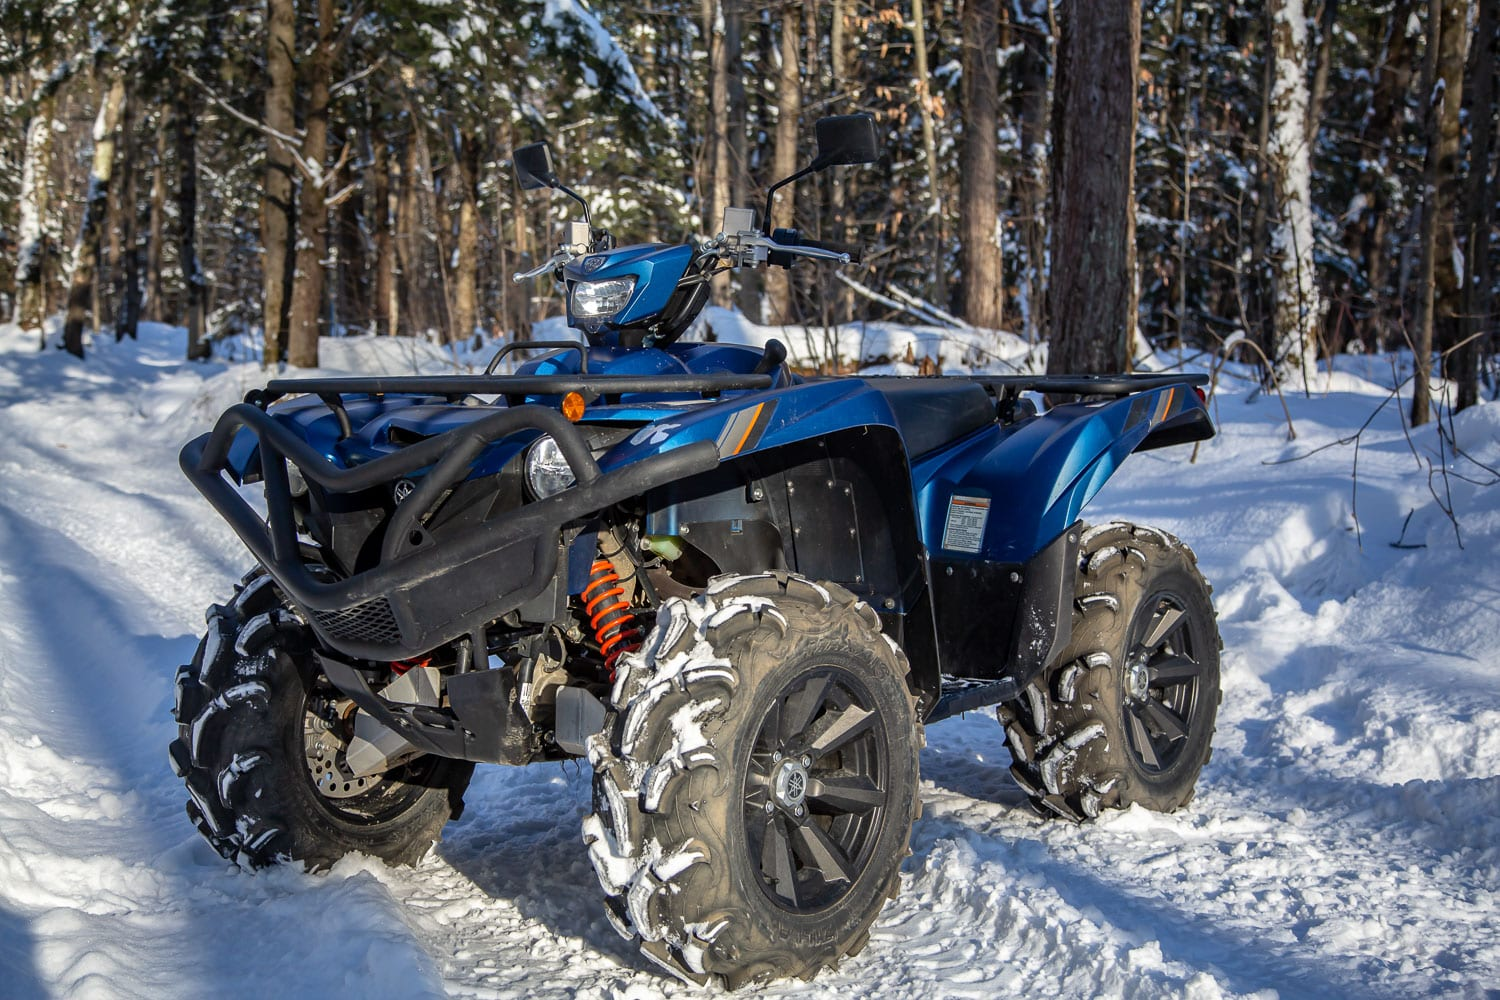 2019 Yamaha Grizzly SE Review